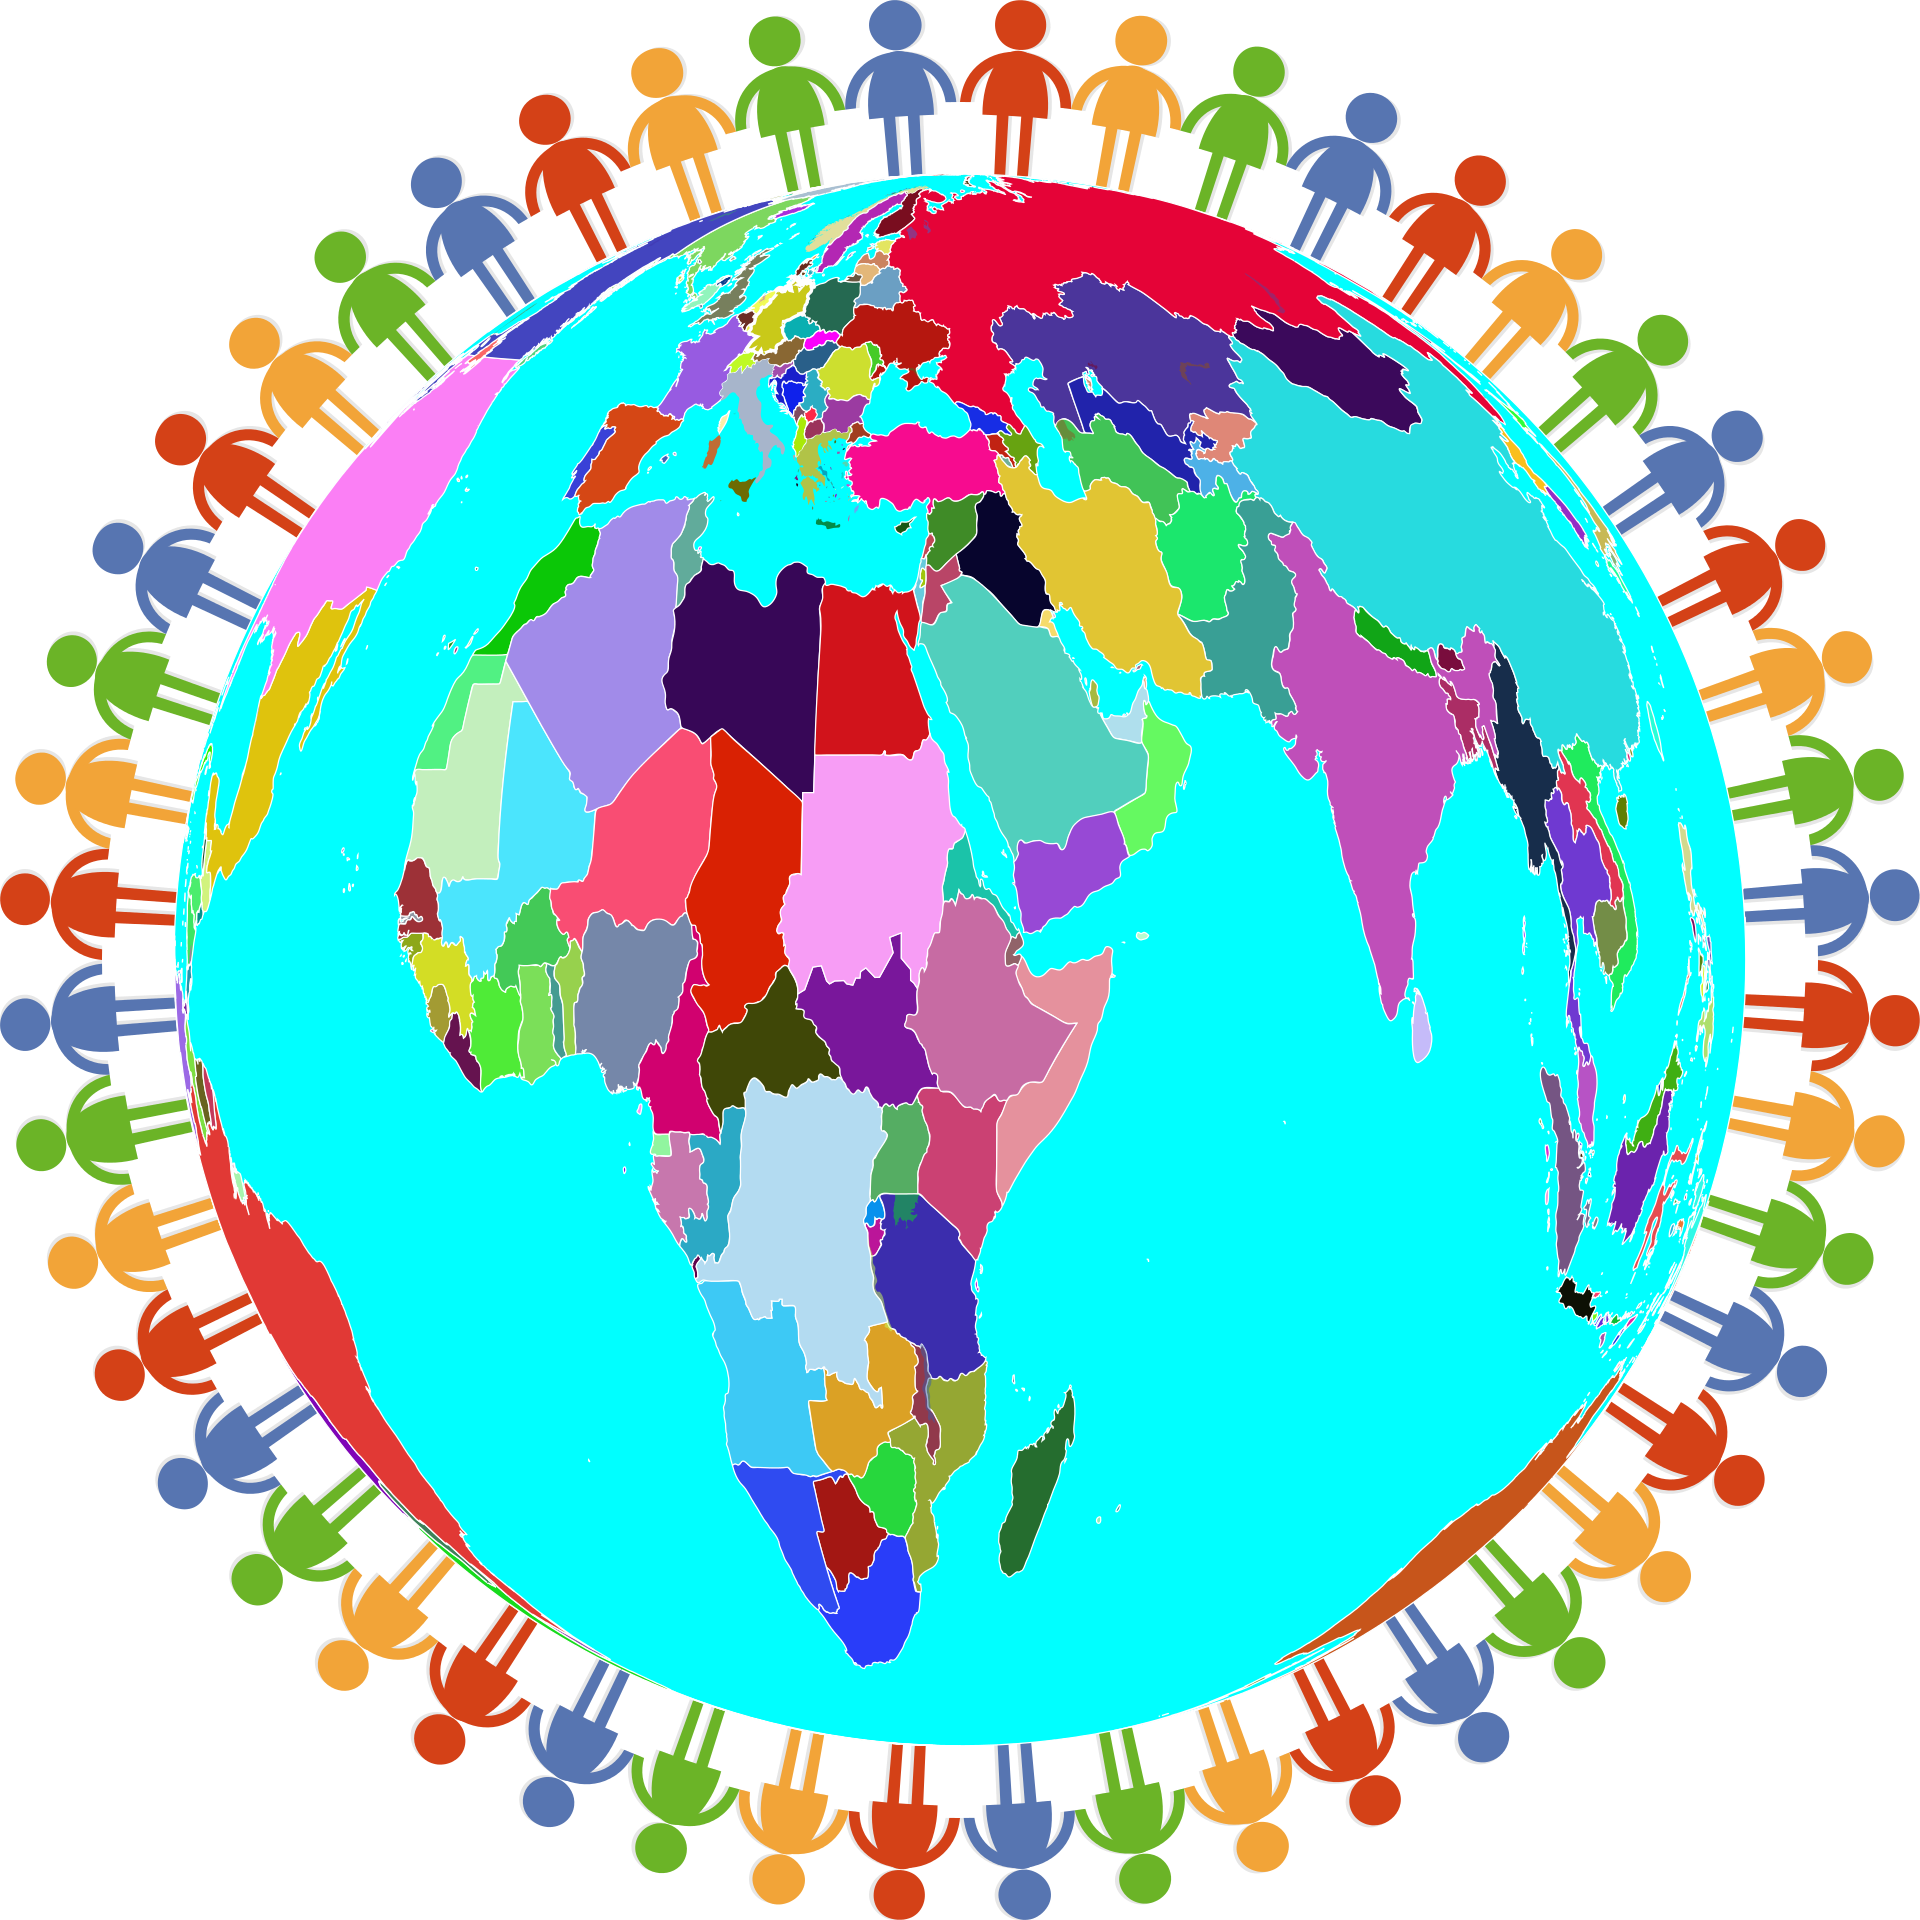 Geogrpahy term paper sample. Geography clipart ap human geography